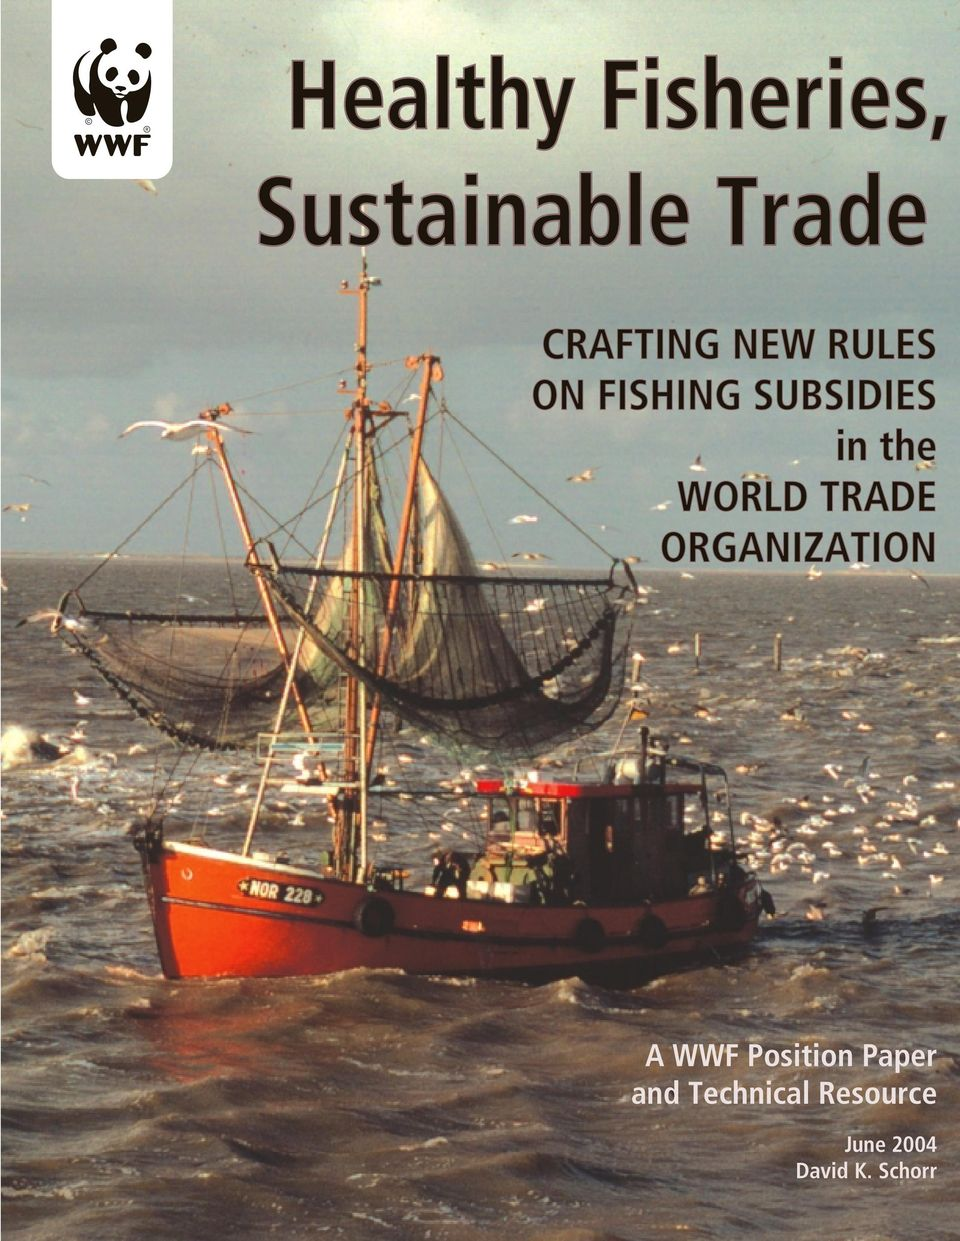 the WORLD TRADE ORGANIZATION A WWF Position